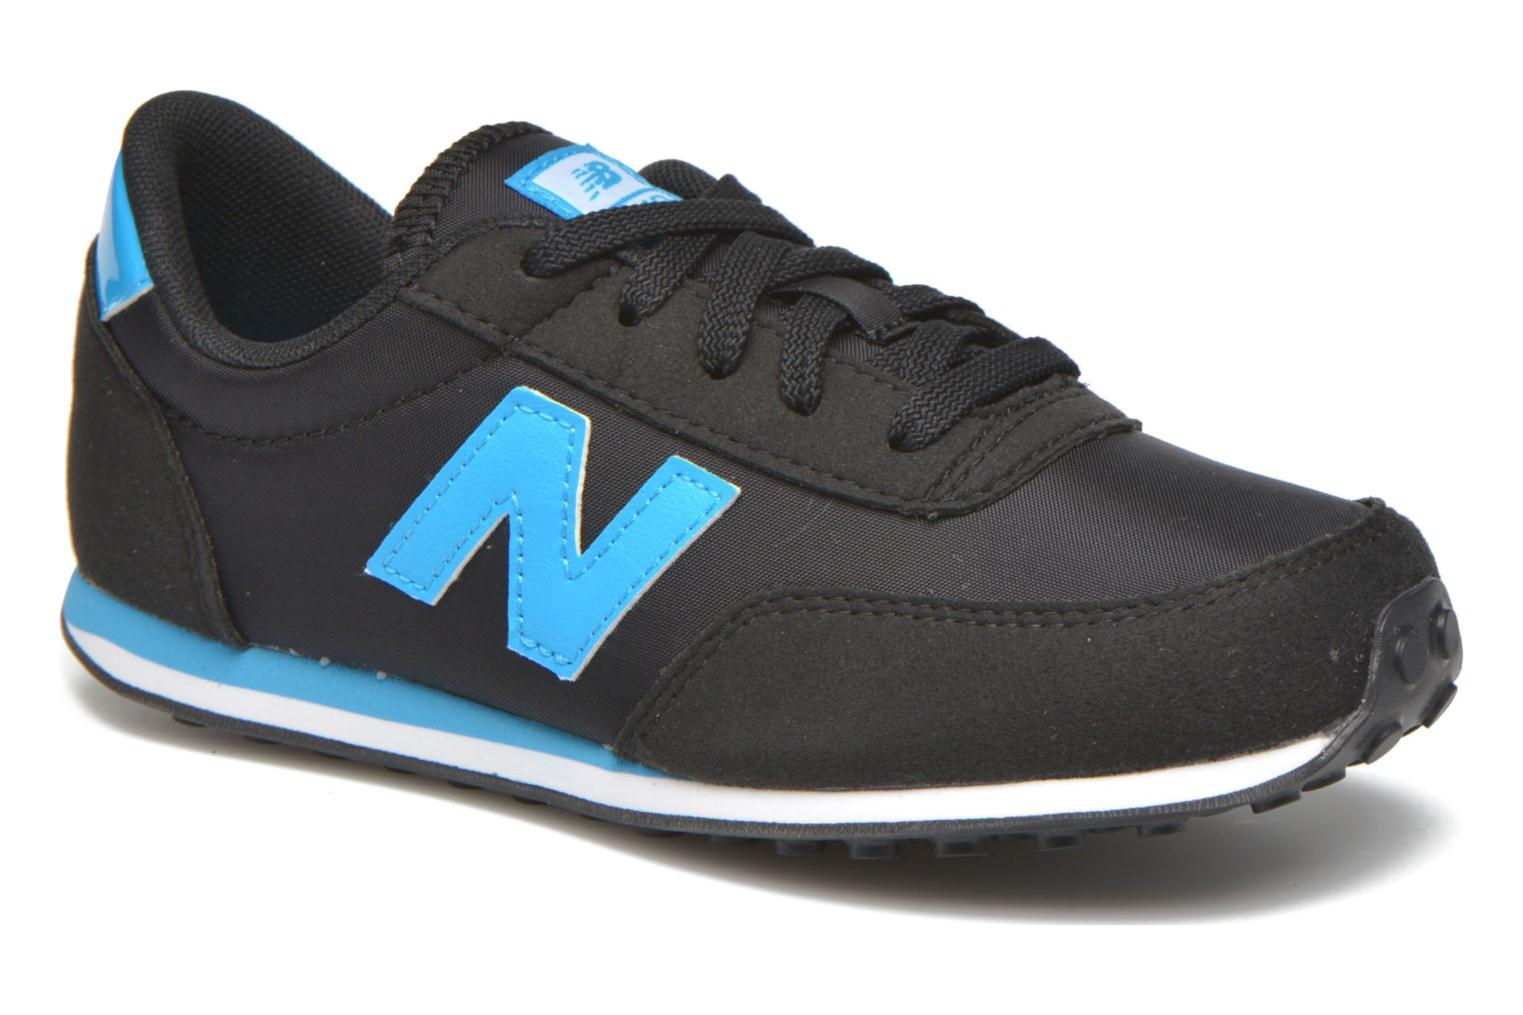 KL410 J BTY Black/Blue